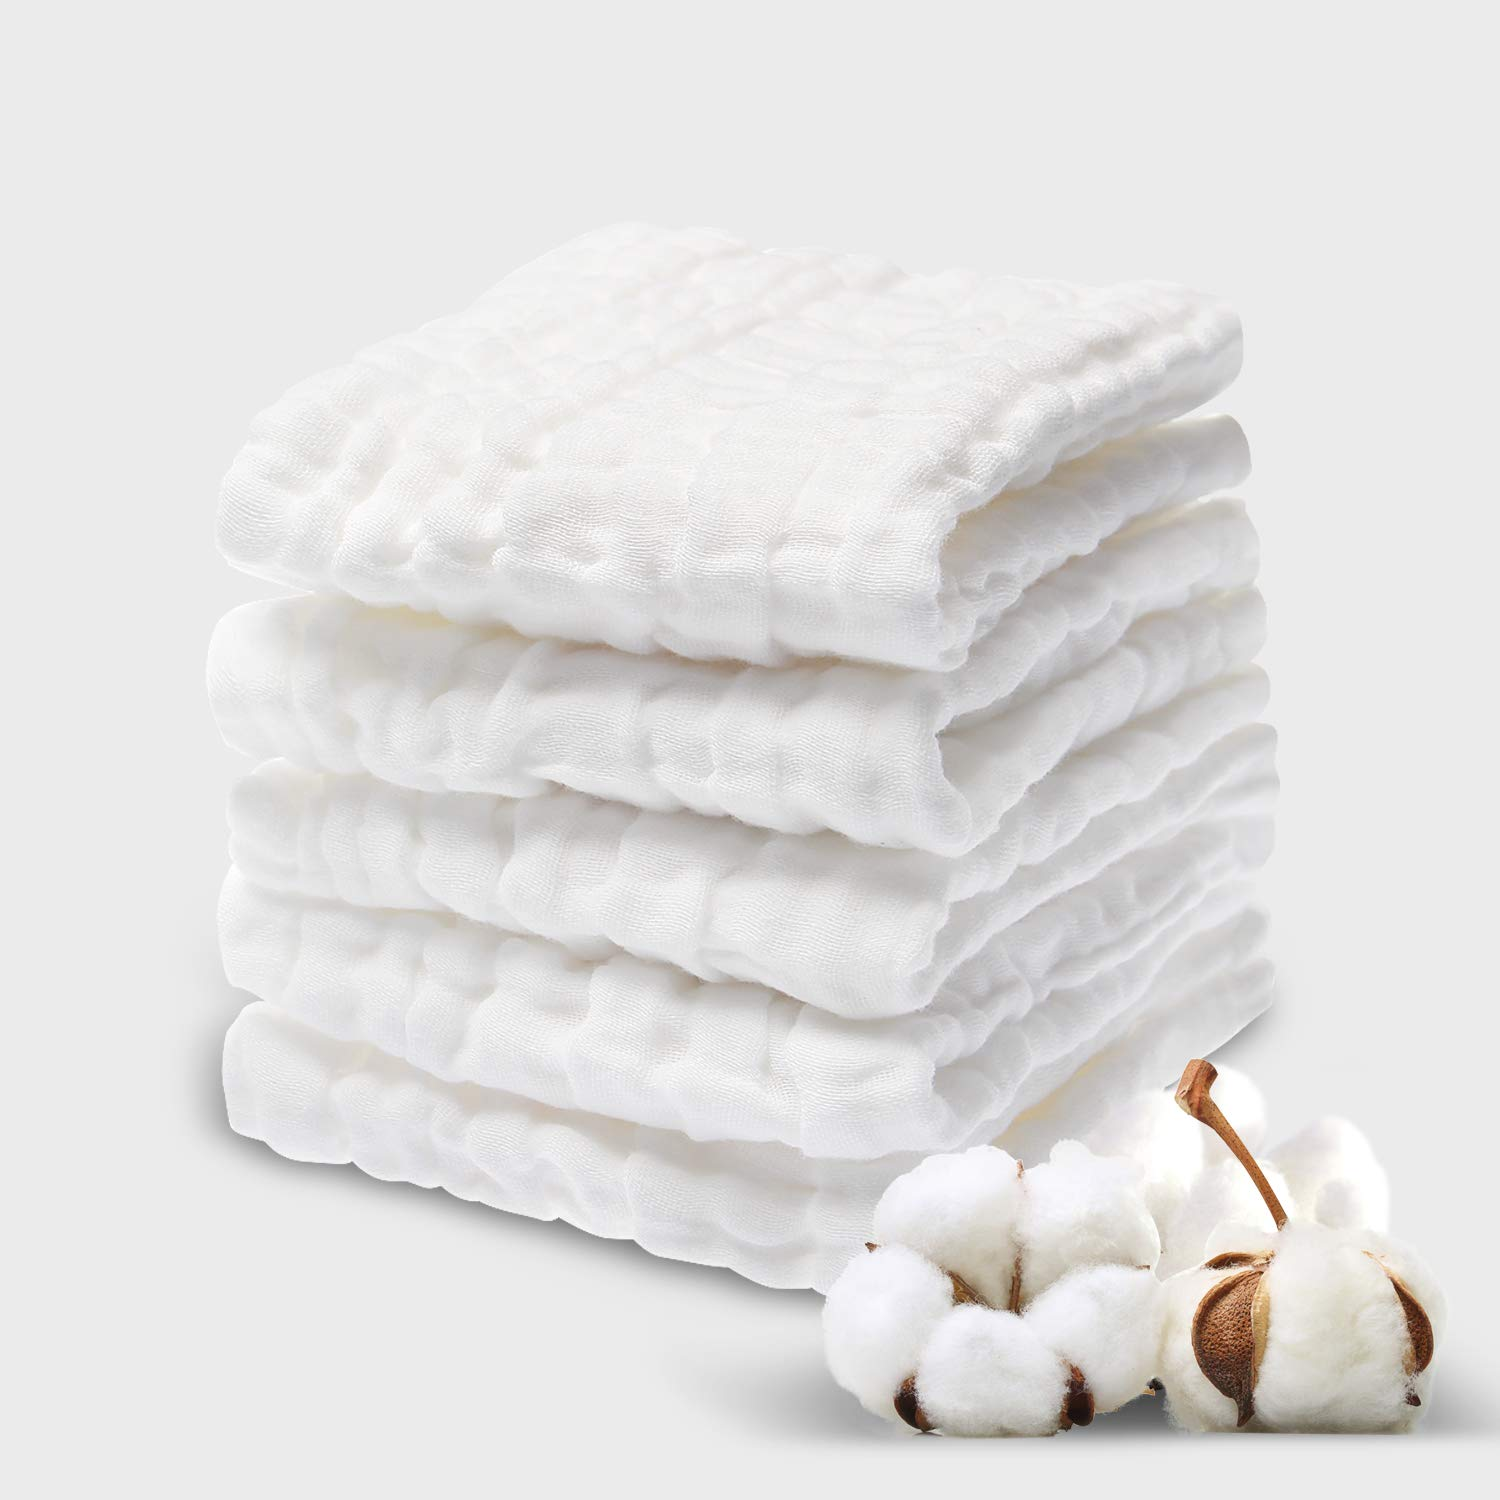 Baby Muslin Washcloths(12x12 inches,5 Pack)-100% Premium Cotton- Chemical Free Baby Wipes- Soft Newborn Baby Face Towel for Sensitive Skin- Baby Registry as Shower Gift.